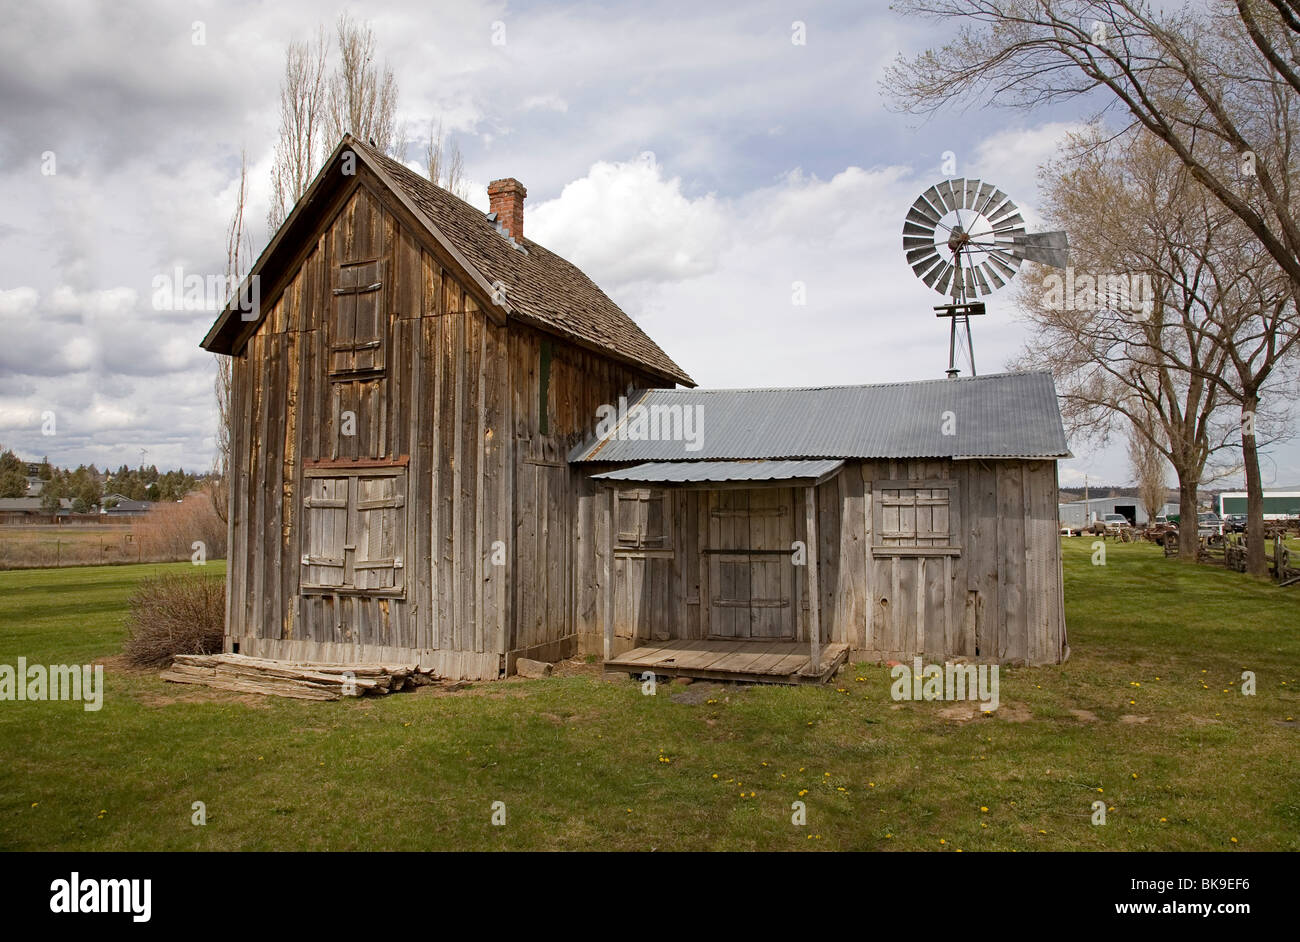 A 150 year old pioneer two story house from the 1800 Old West Stock Photo